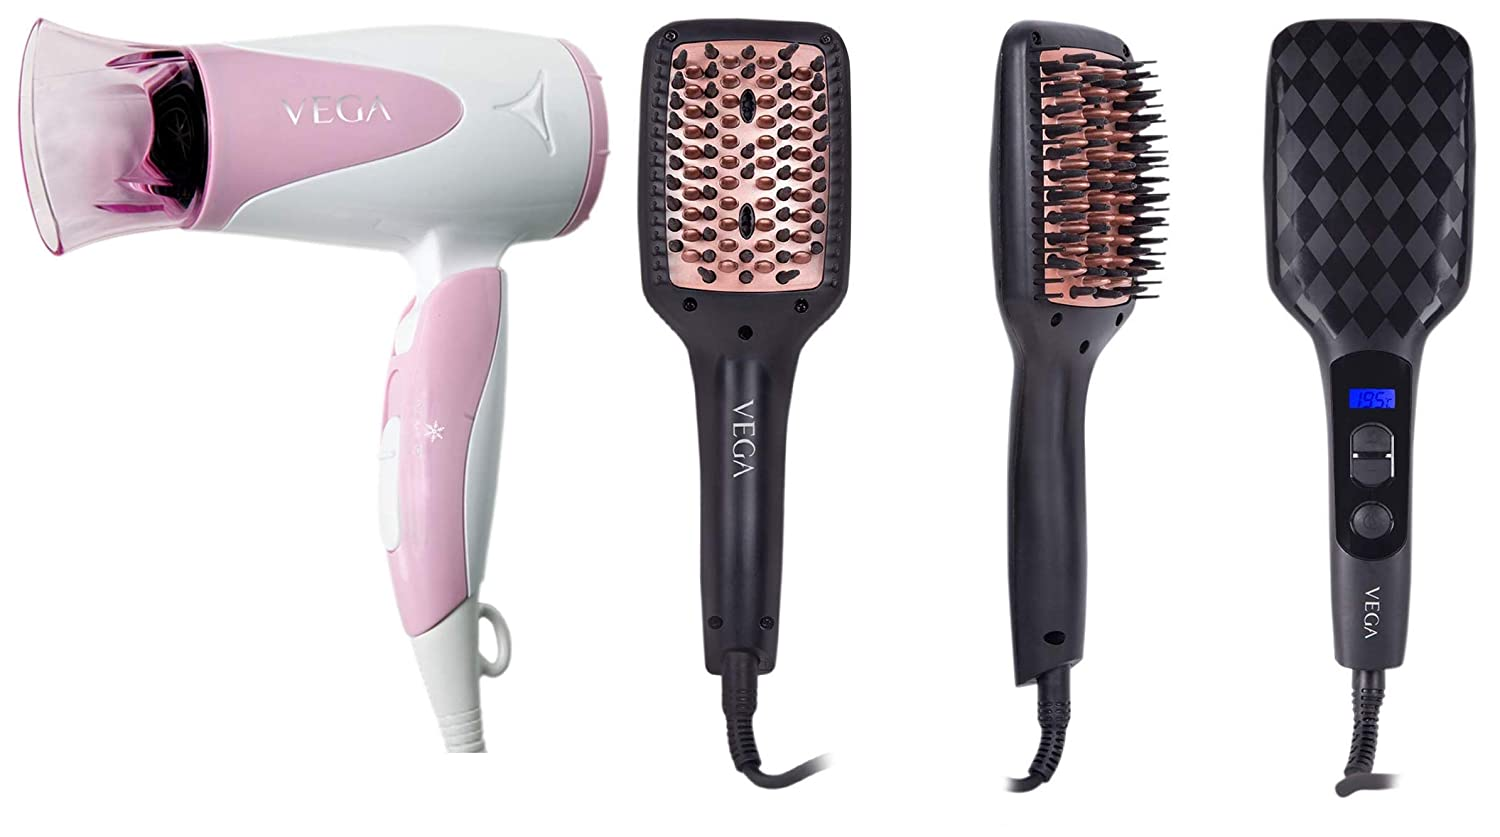 Best Blooming Air Hair Dryer & Vega X-Look – Simply Brush – Paddle Straightening Brush with Ionic Technology and Temperature Control